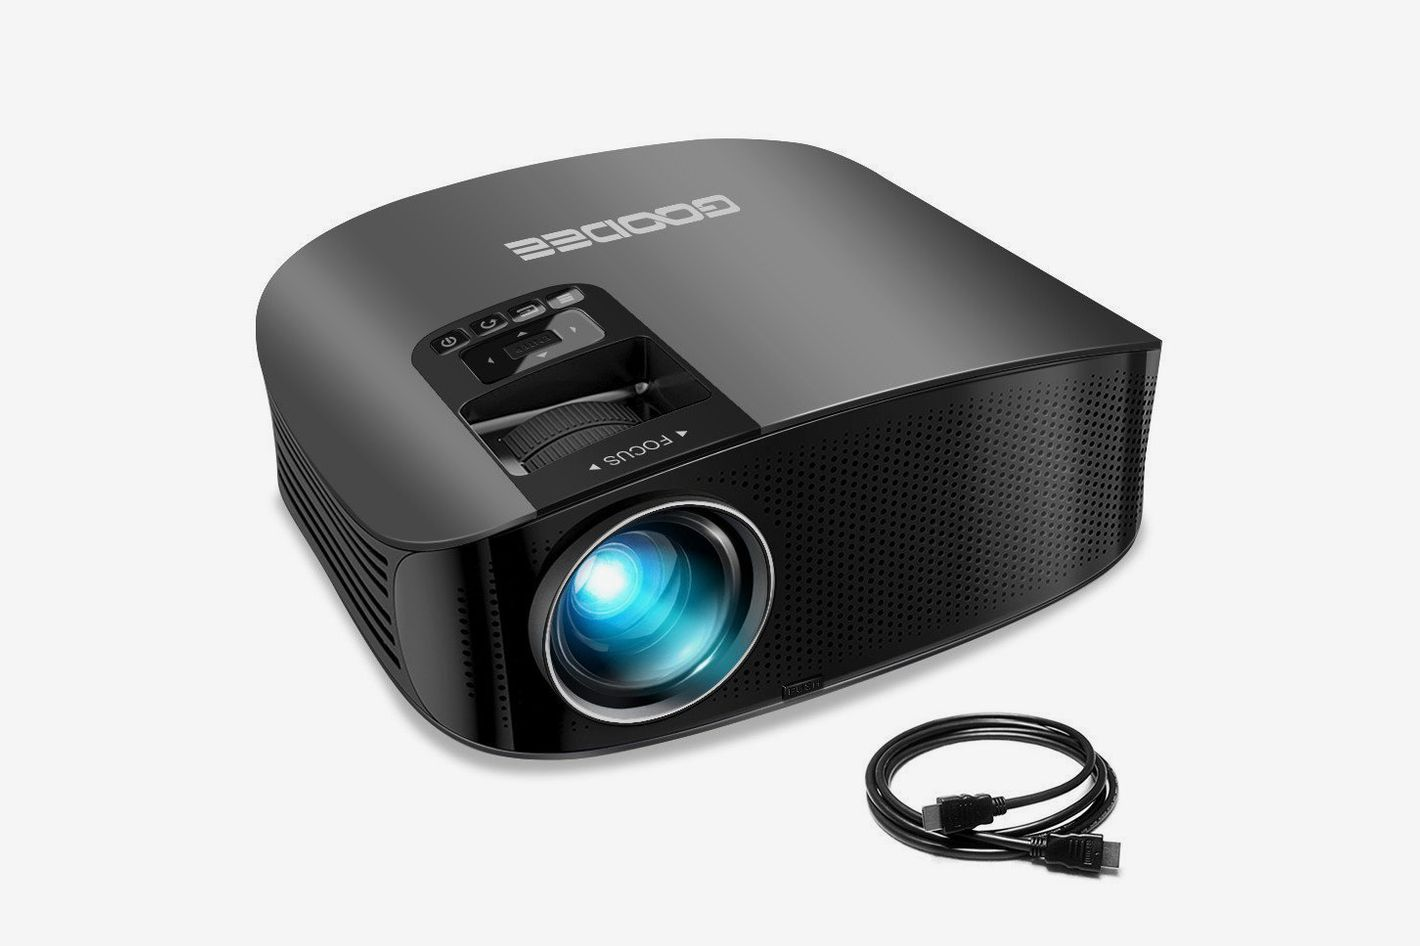 "GooDee Video Projector 200"" LCD Home Theater Projector"